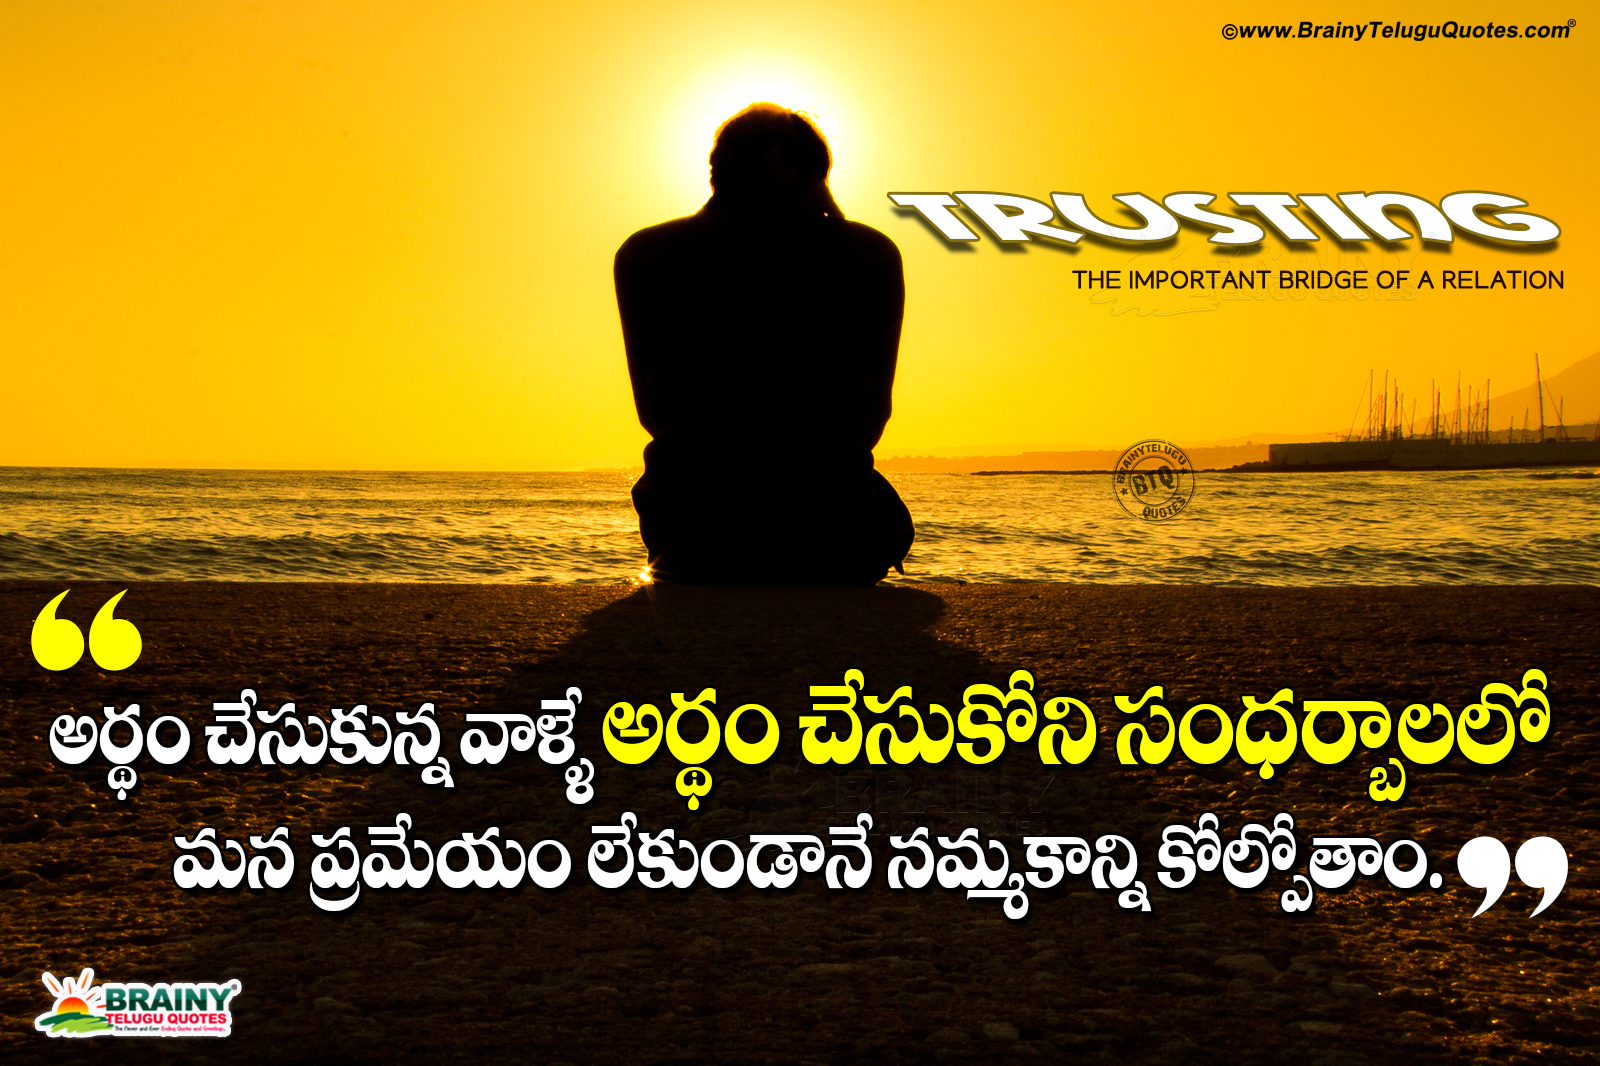 Trust Quotes In Hindi With Images: Telugu Famous Words About A Relationship-Trust Importance